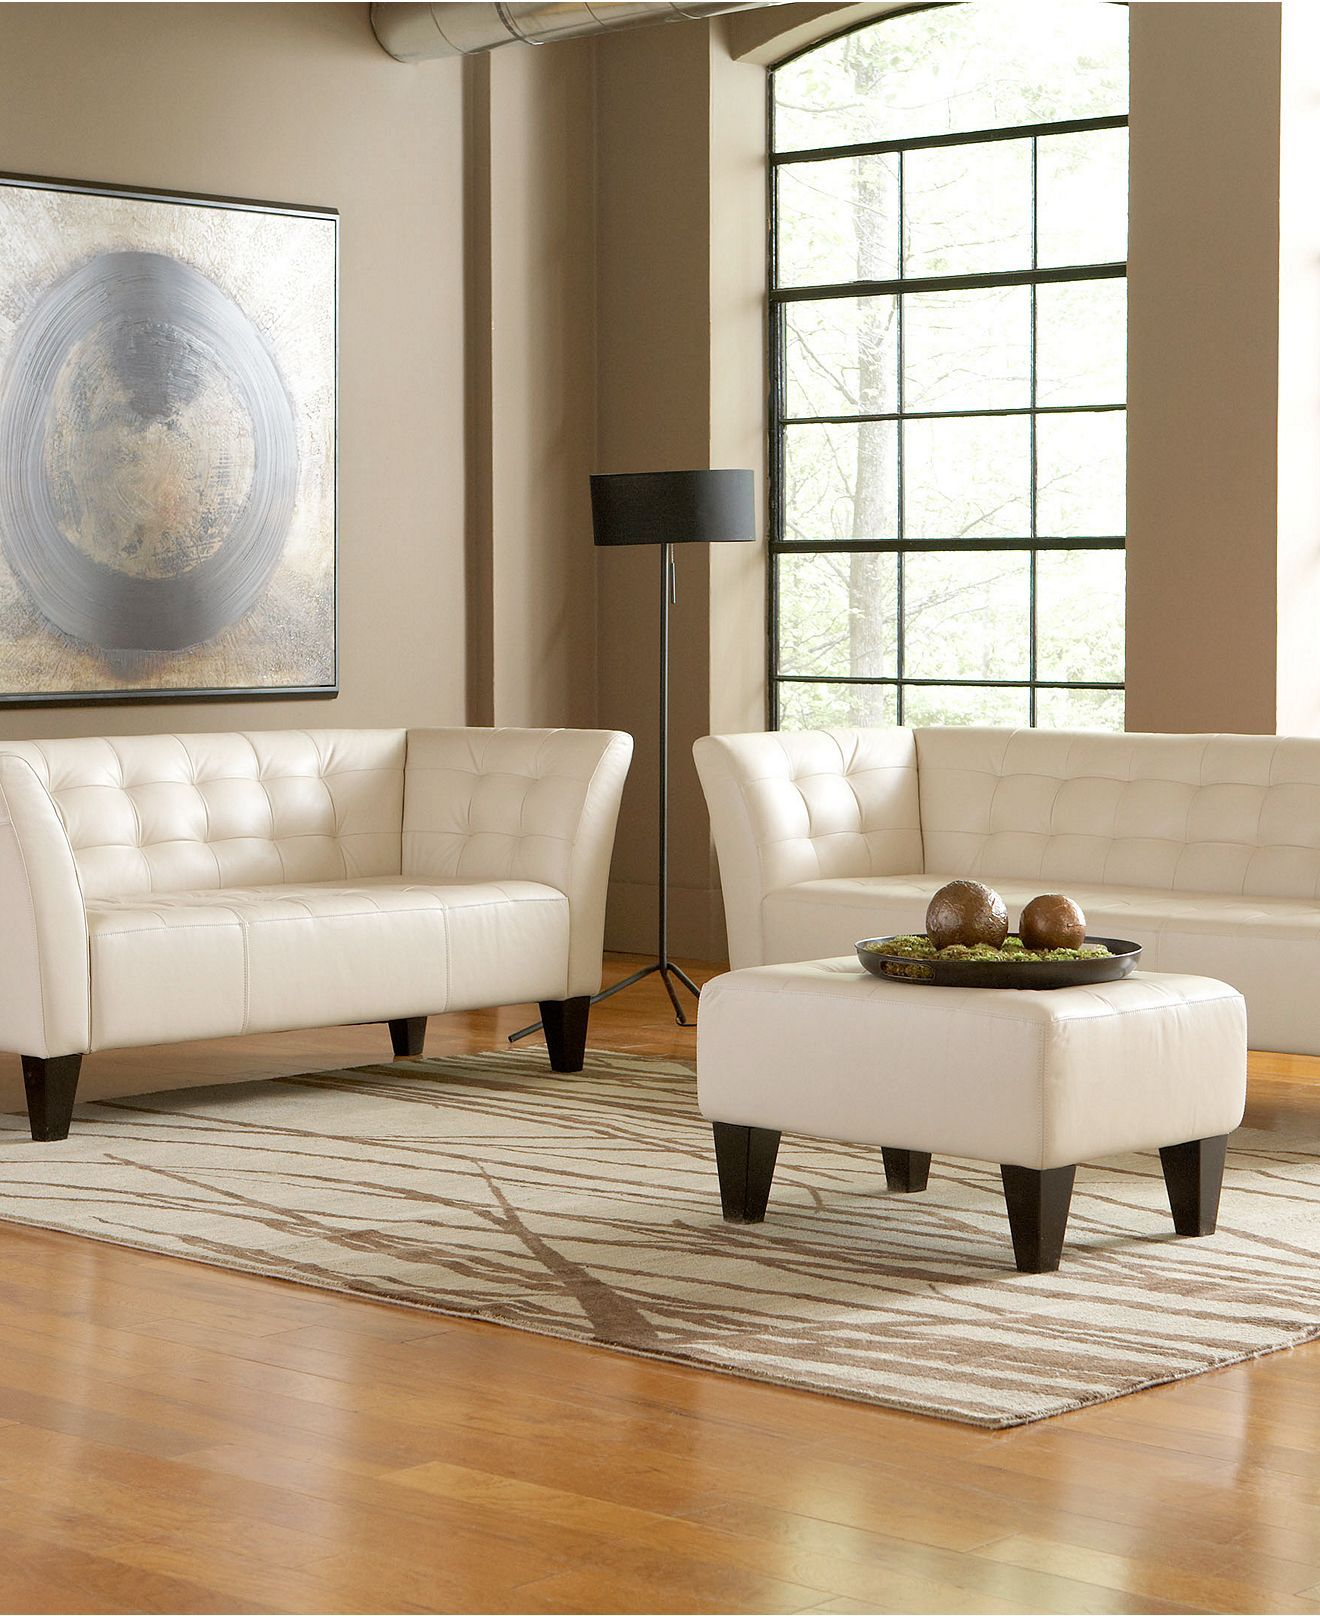 Orso Living Room Furniture Sets Pieces Furniture Macy S Living Room Furniture Collections Tufted Sofa Living Room Living Room Furniture